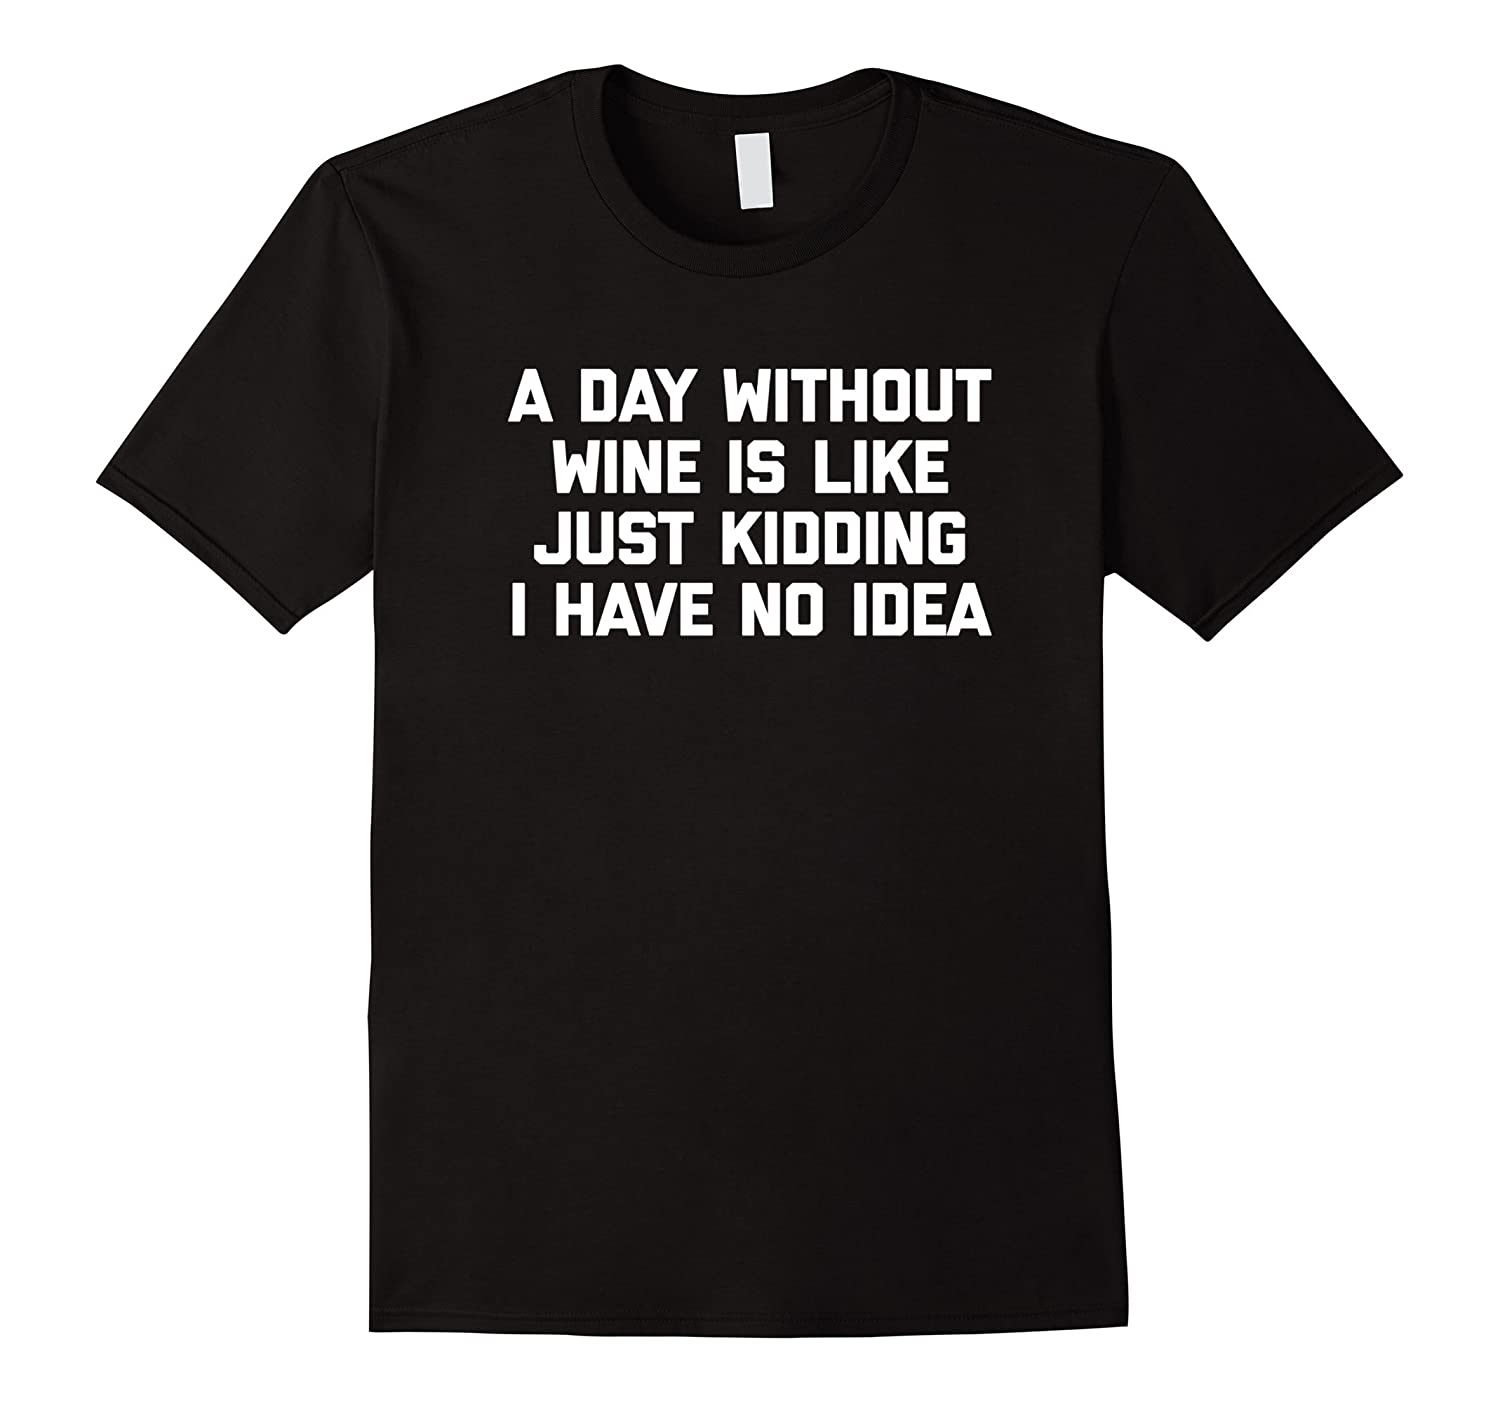 A Day Without Wine (Just Kidding) T-Shirt funny sarcastic-TH